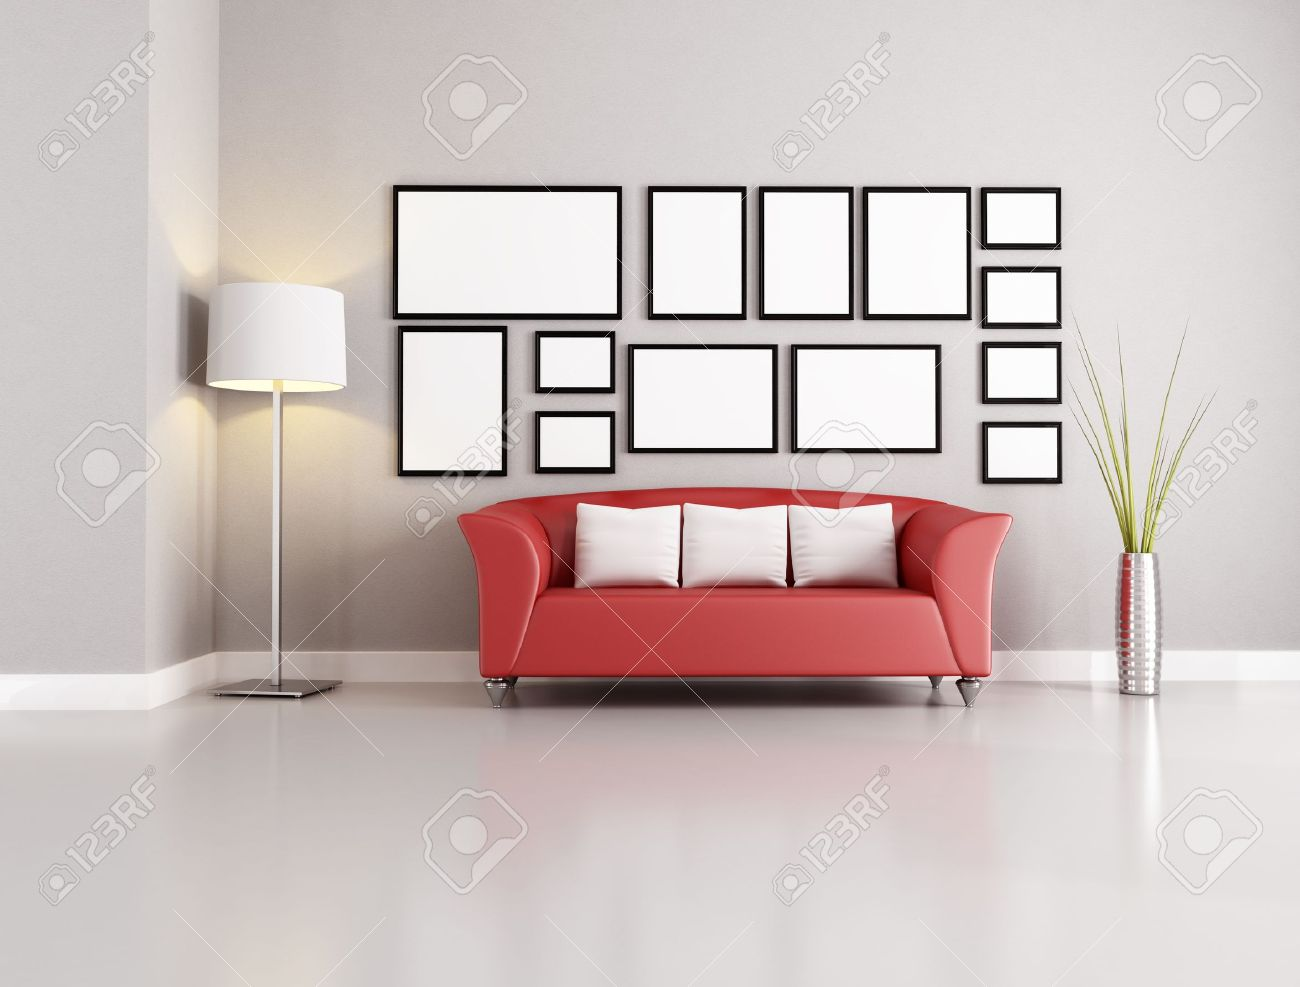 Red Sofa In Modern Living Room With Empty Frames Stock Photo